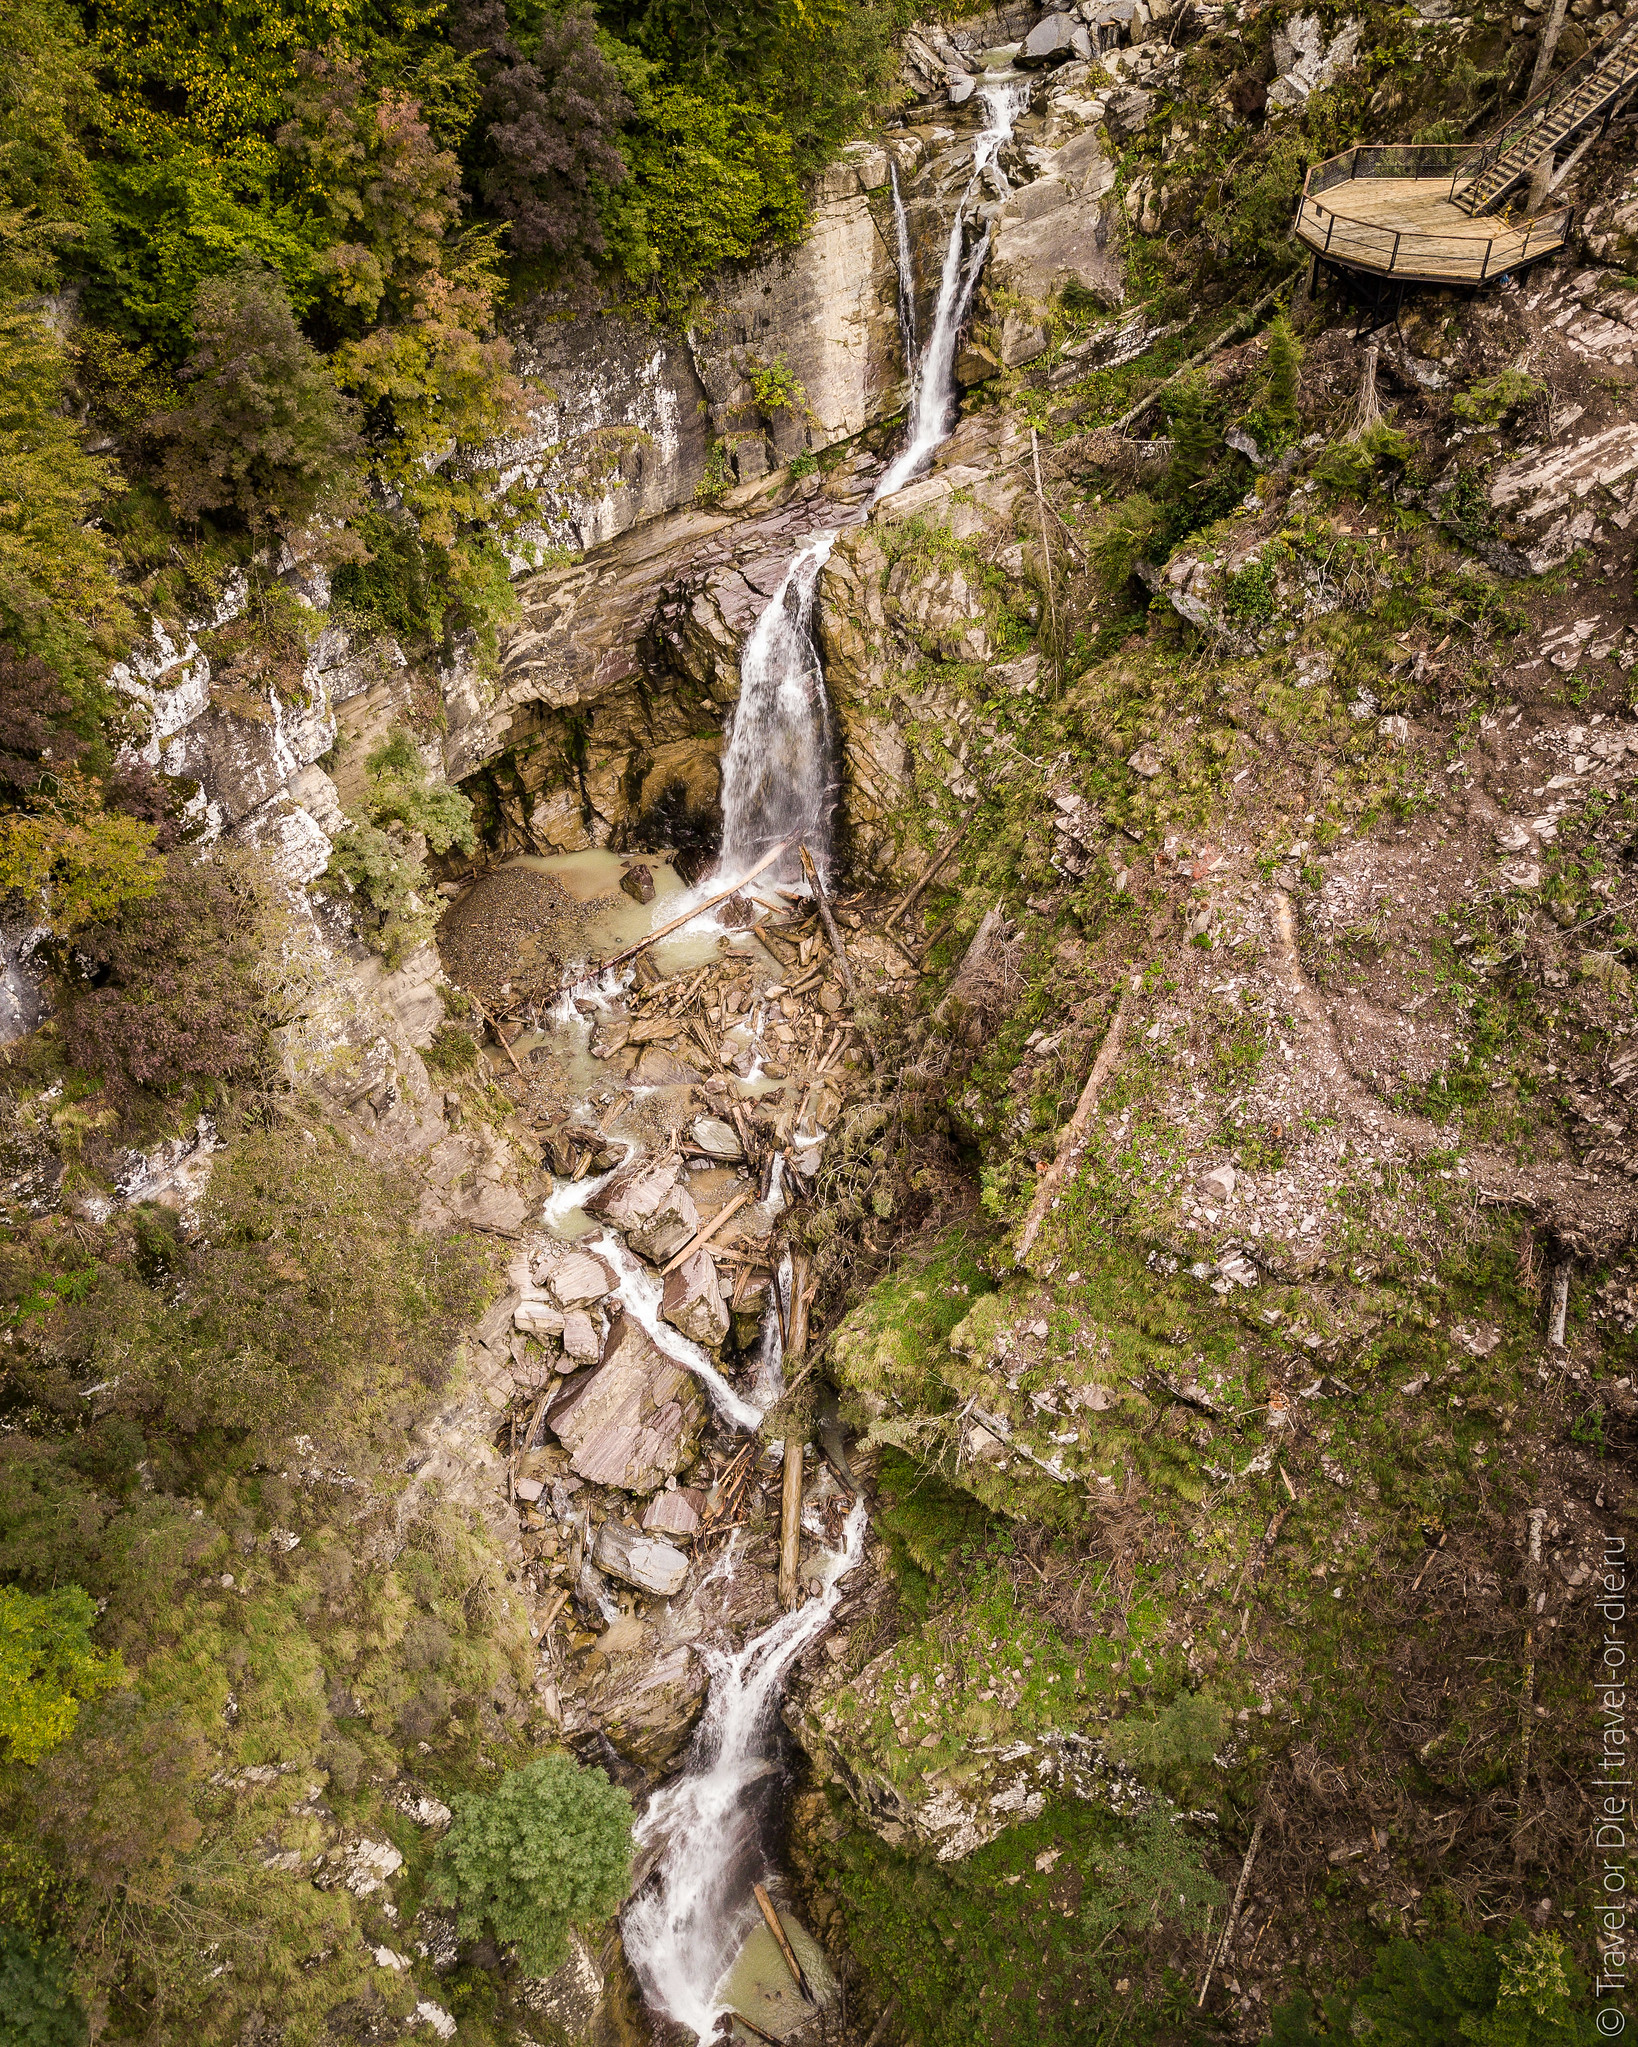 Park-of-Waterfalls-Mendelikha-mavic-0982